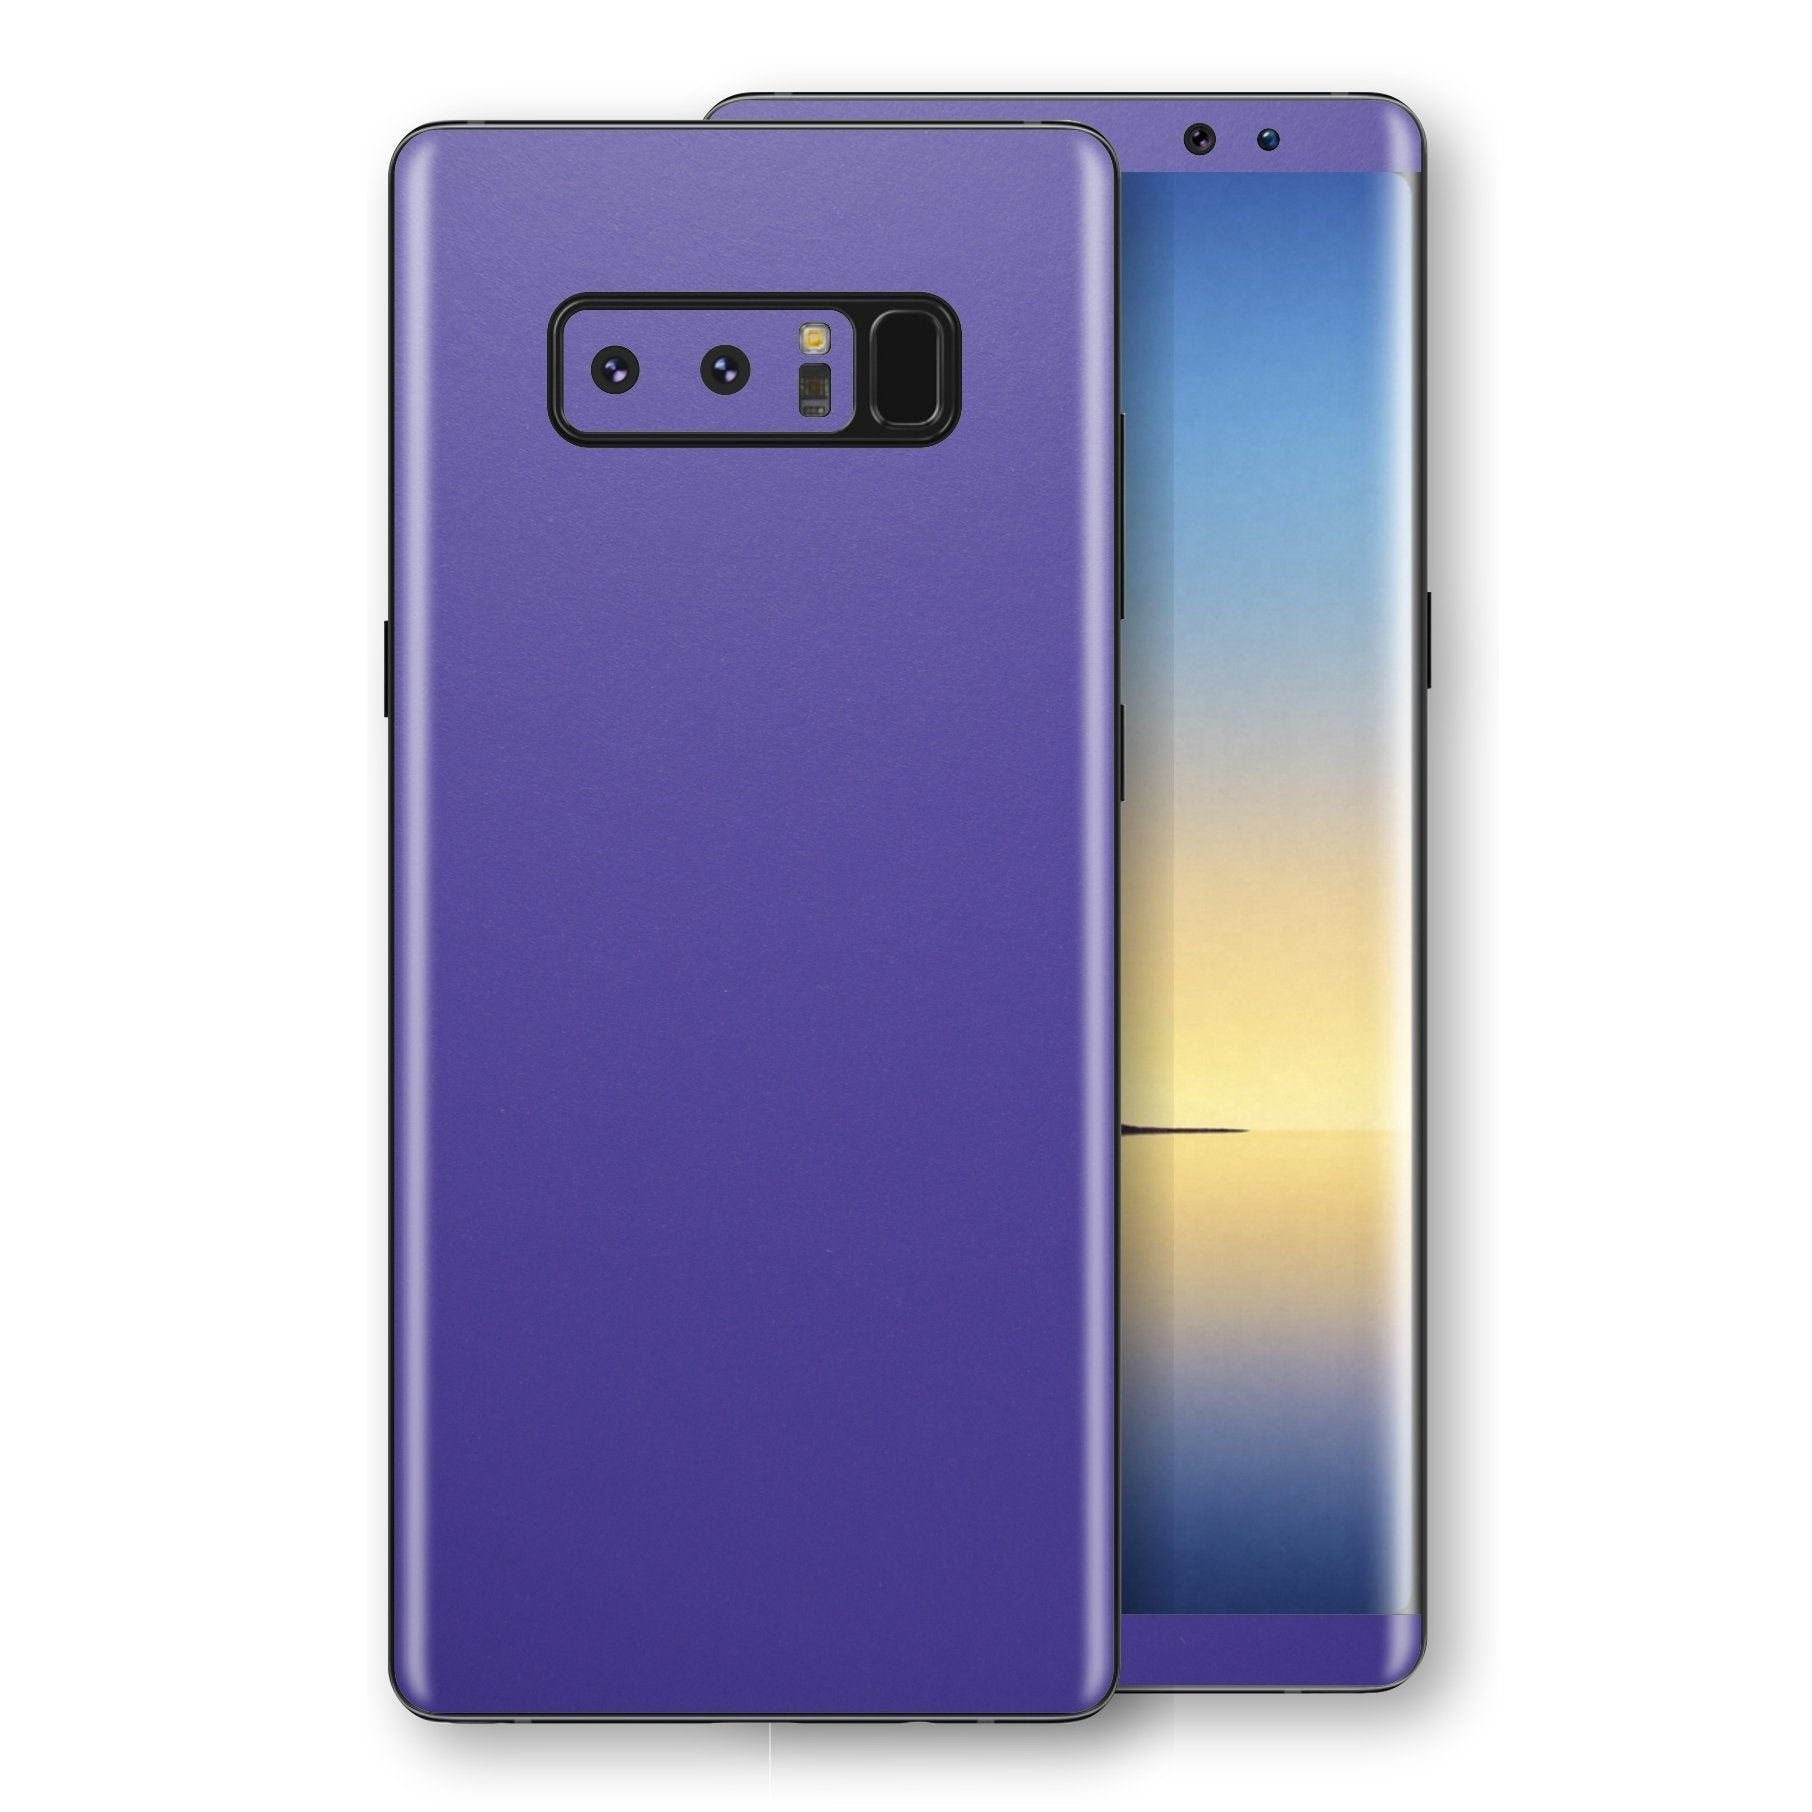 Samsung Galaxy NOTE 8 Royal Purple Matt Skin, Decal, Wrap, Protector, Cover by EasySkinz | EasySkinz.com